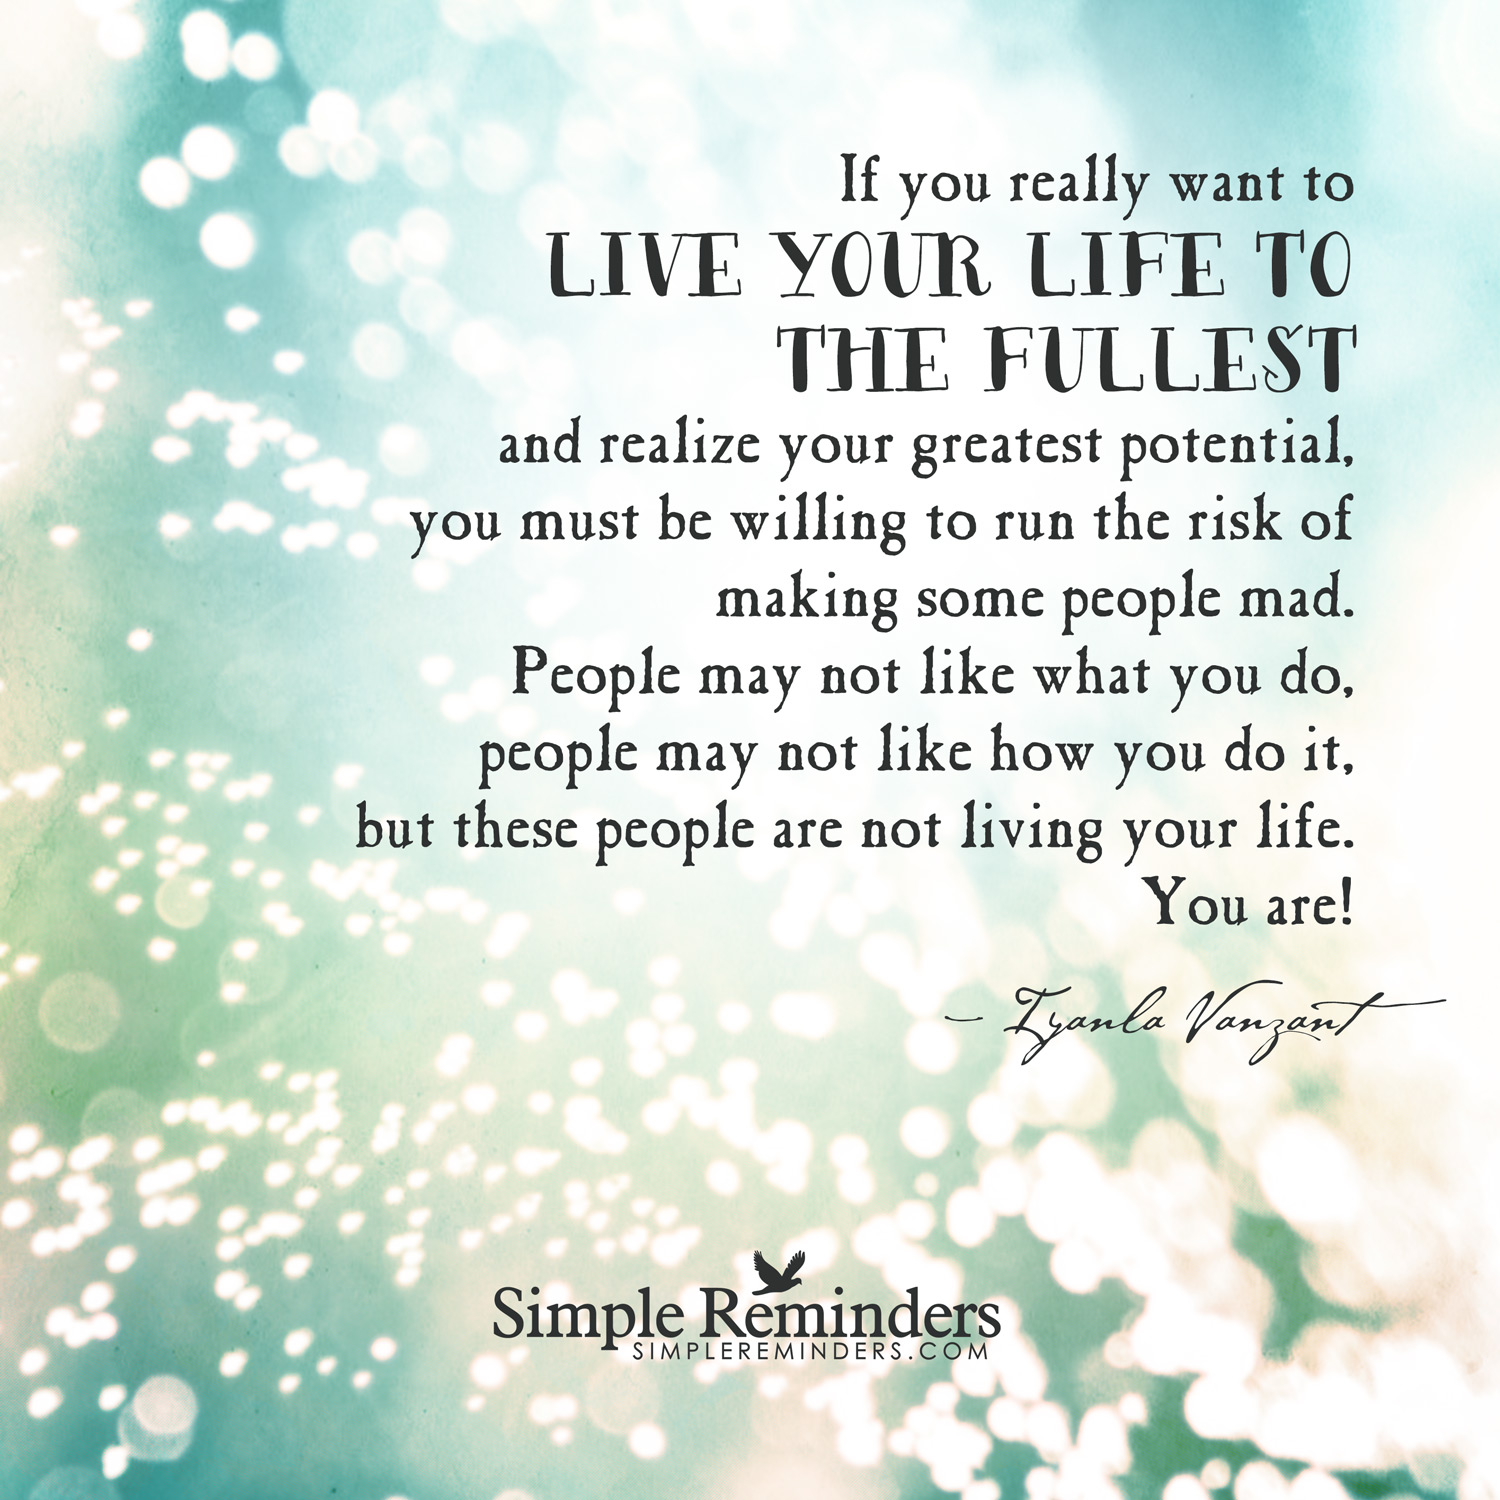 Live Your Life Quotes Quotes About Live Life To Its Fullest 17 Quotes